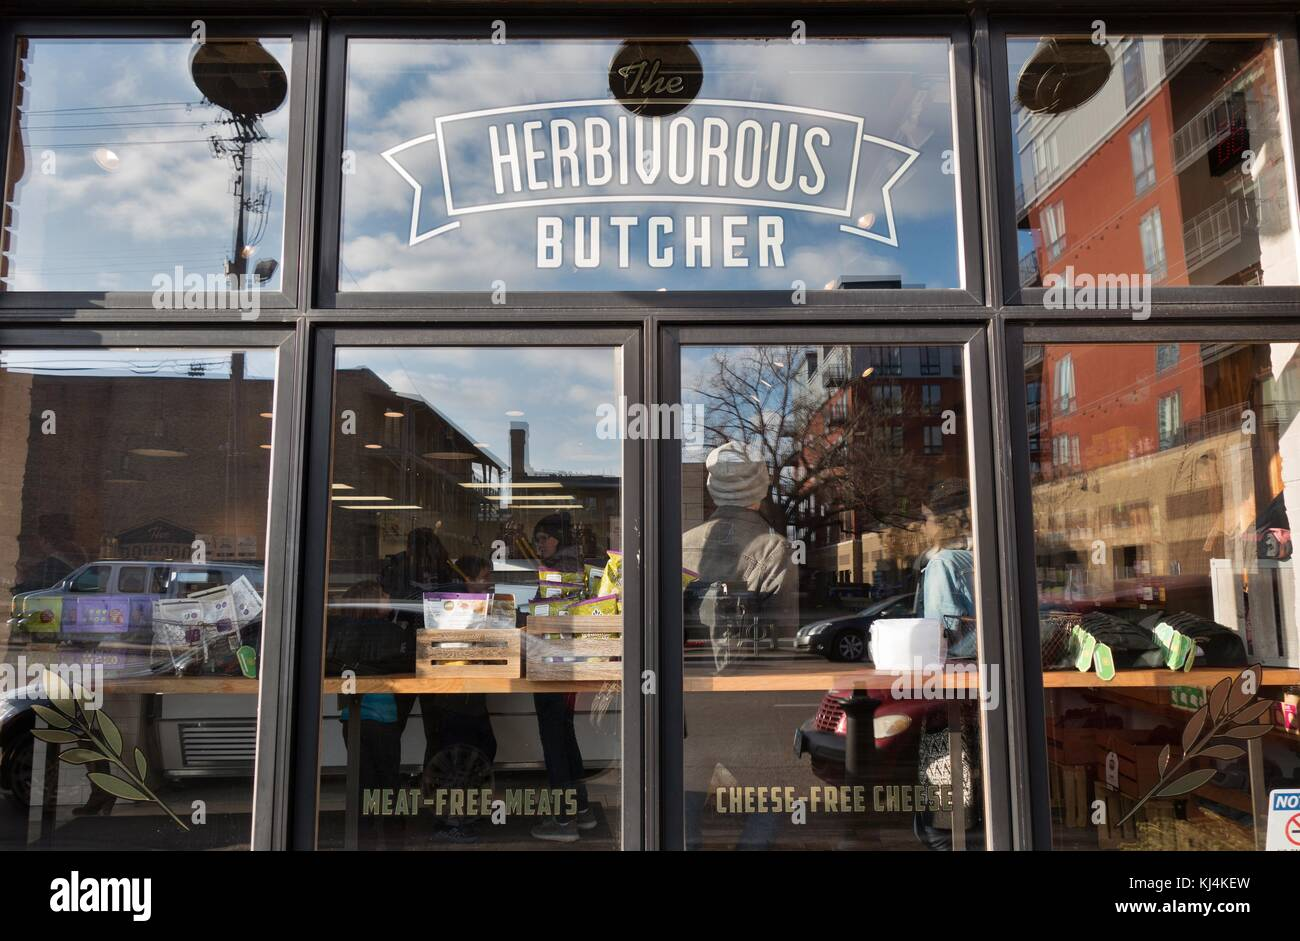 The store front of The Herbivorous Butcher shop in Minneapolis, Minnesota, USA. - Stock Image